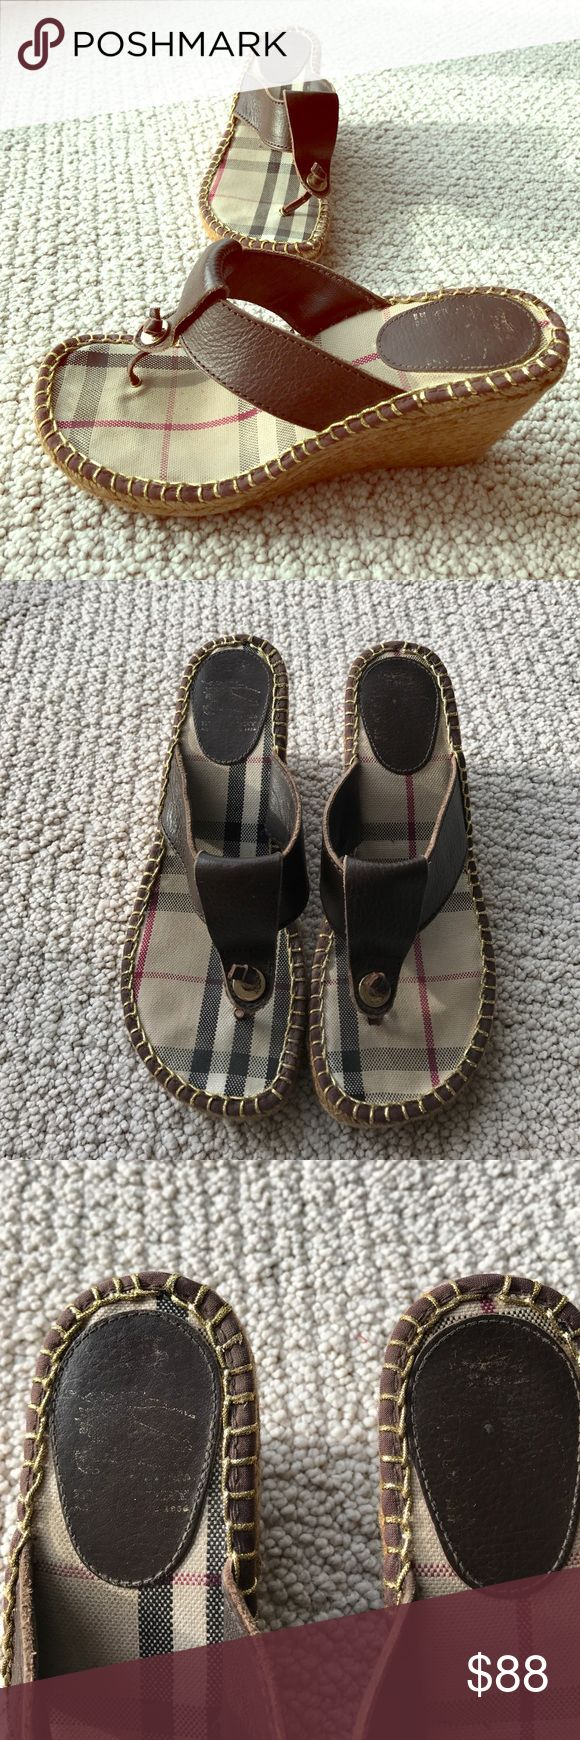 """Burberry Metallic Espadrille Wedge Sandals Perfect for spring and summer! Metallic leather Burberry espadrille sandals with tonal stitching and jute wedge heels. Very light wear, Burberry emblem has mostly worn off of the insoles. Padded fabric and leather insoles. Rubber soles. Leather upper. Made in Spain. Size 38 European. Heel height is 3.125"""". Platform is 0.75"""". No trades please! Burberry Shoes Wedges"""